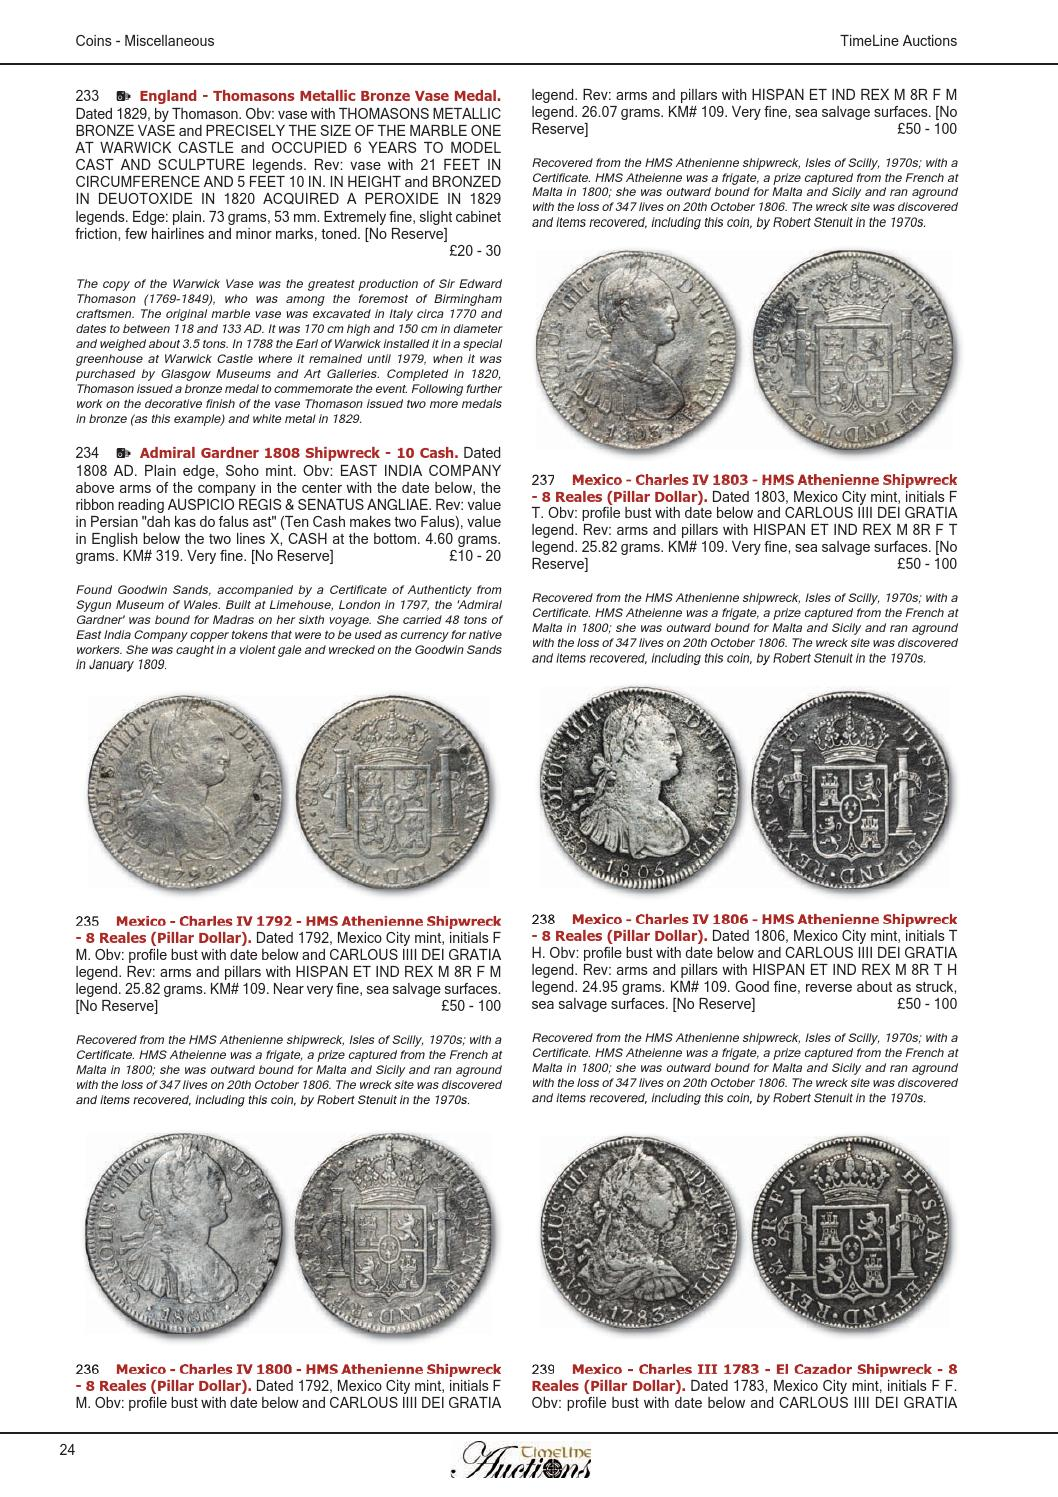 TimeLine Auctions - Coins 19 June 2013 by Daniel Riddick - issuu